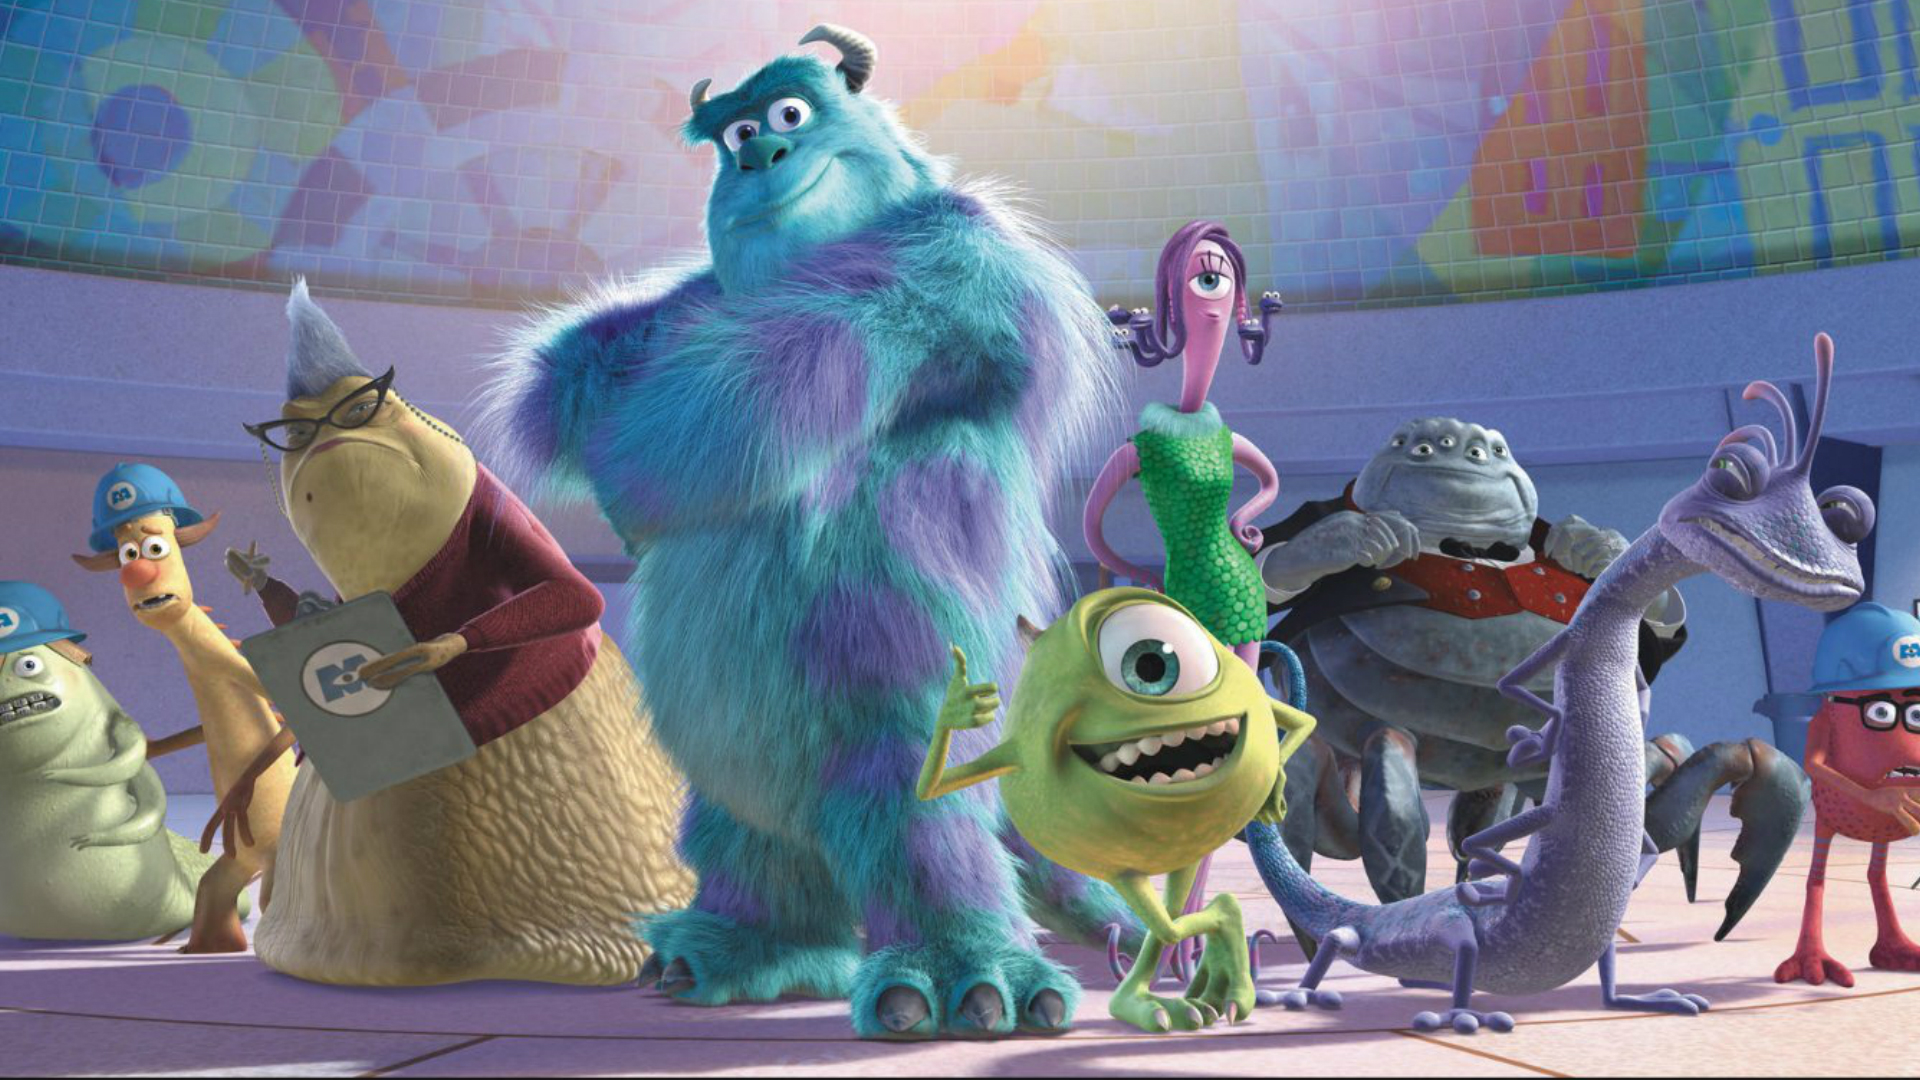 Disney Pixar's Monsters Inc.